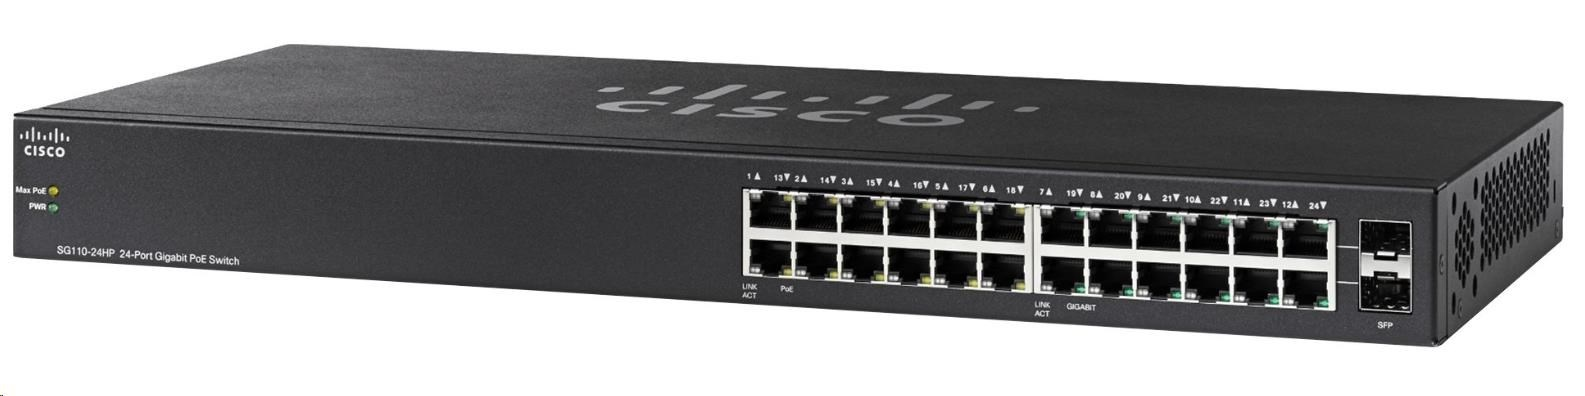 Cisco switch SG110-24HP, 22x10/100/1000, 2xGbE SFP/RJ-45, PoE